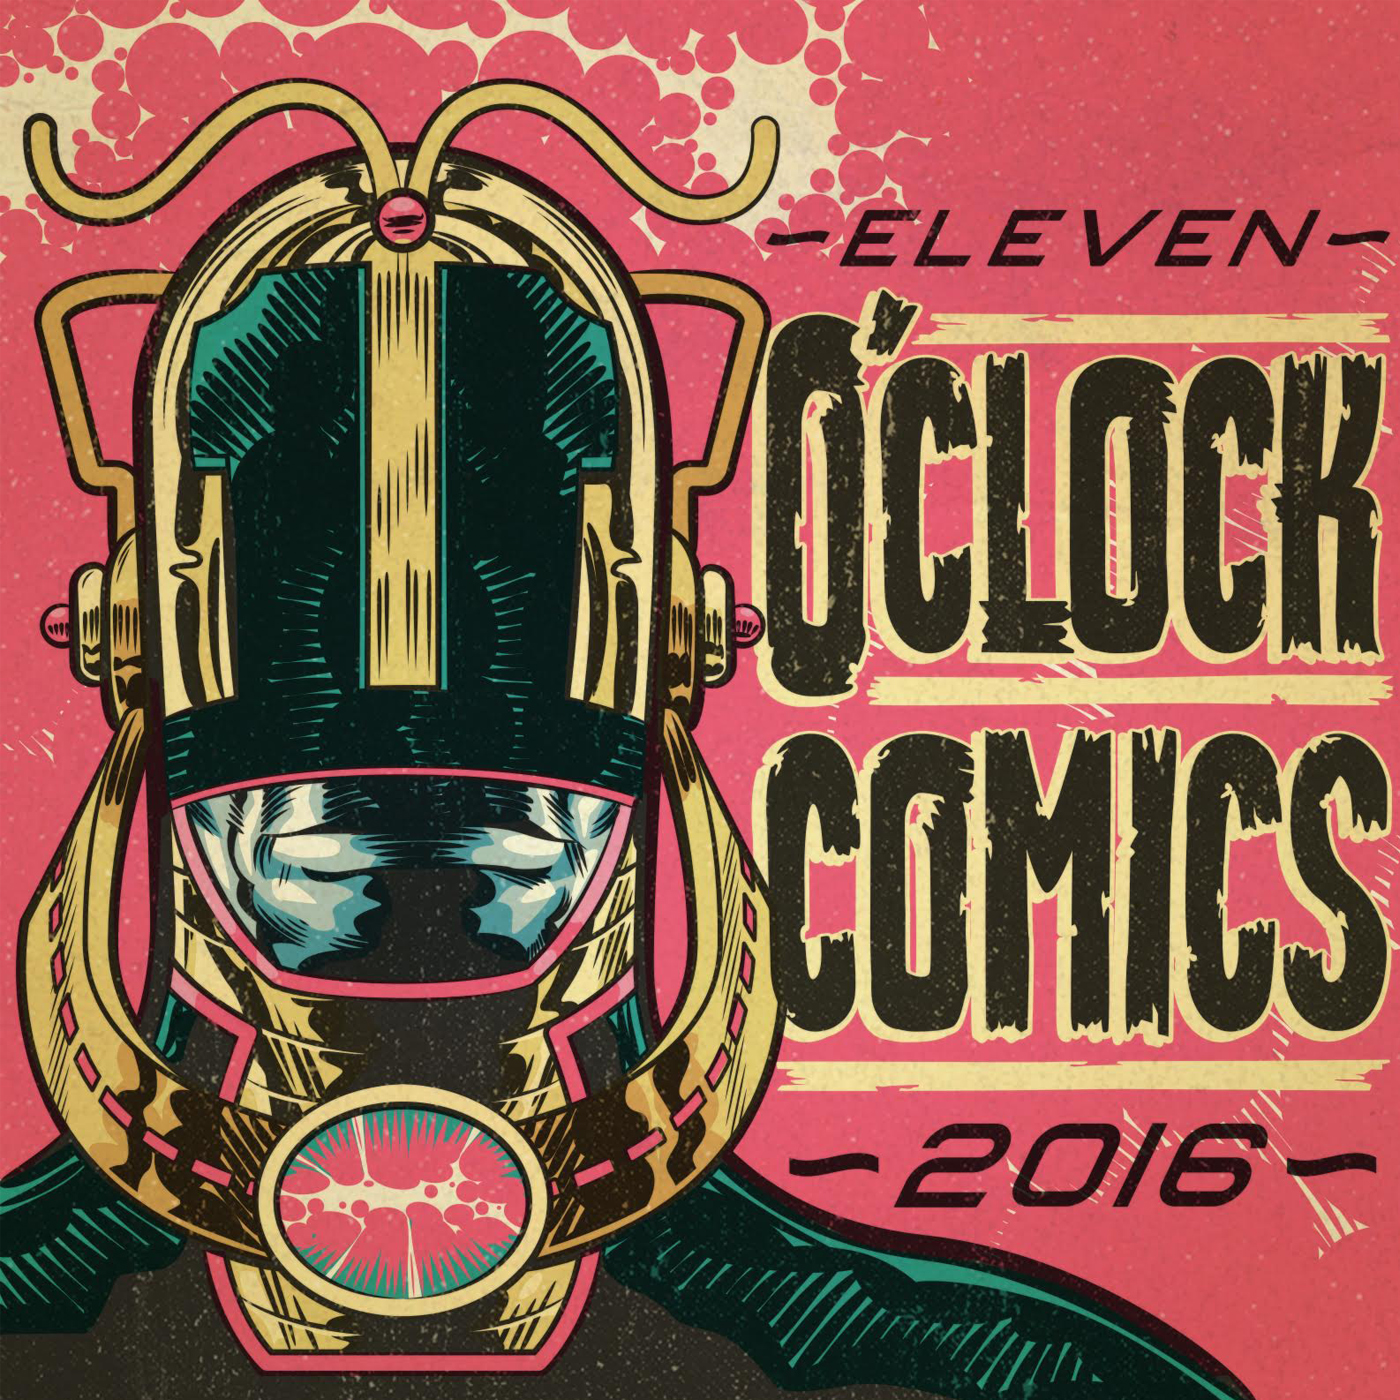 11 O'Clock Comics Episode 416